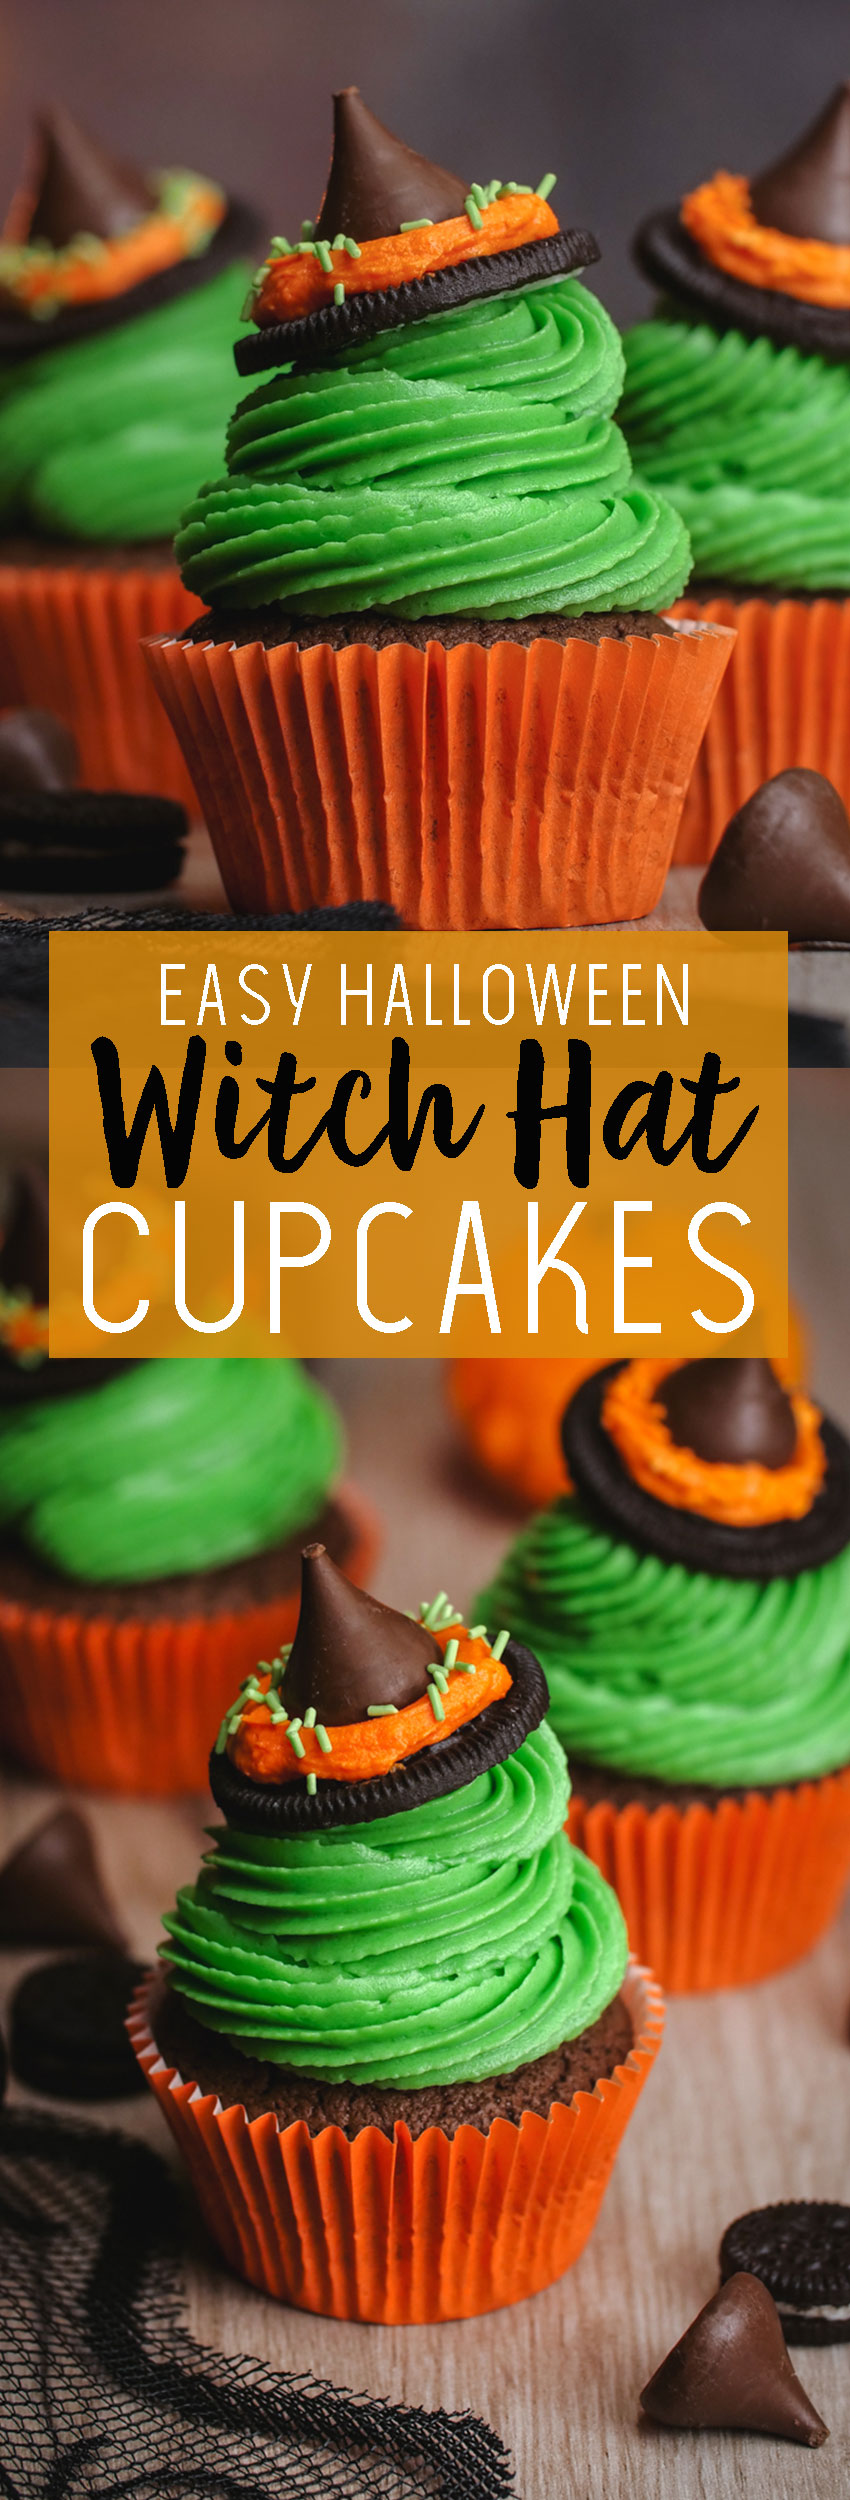 Easy to make witches hat cupcakes for Halloween